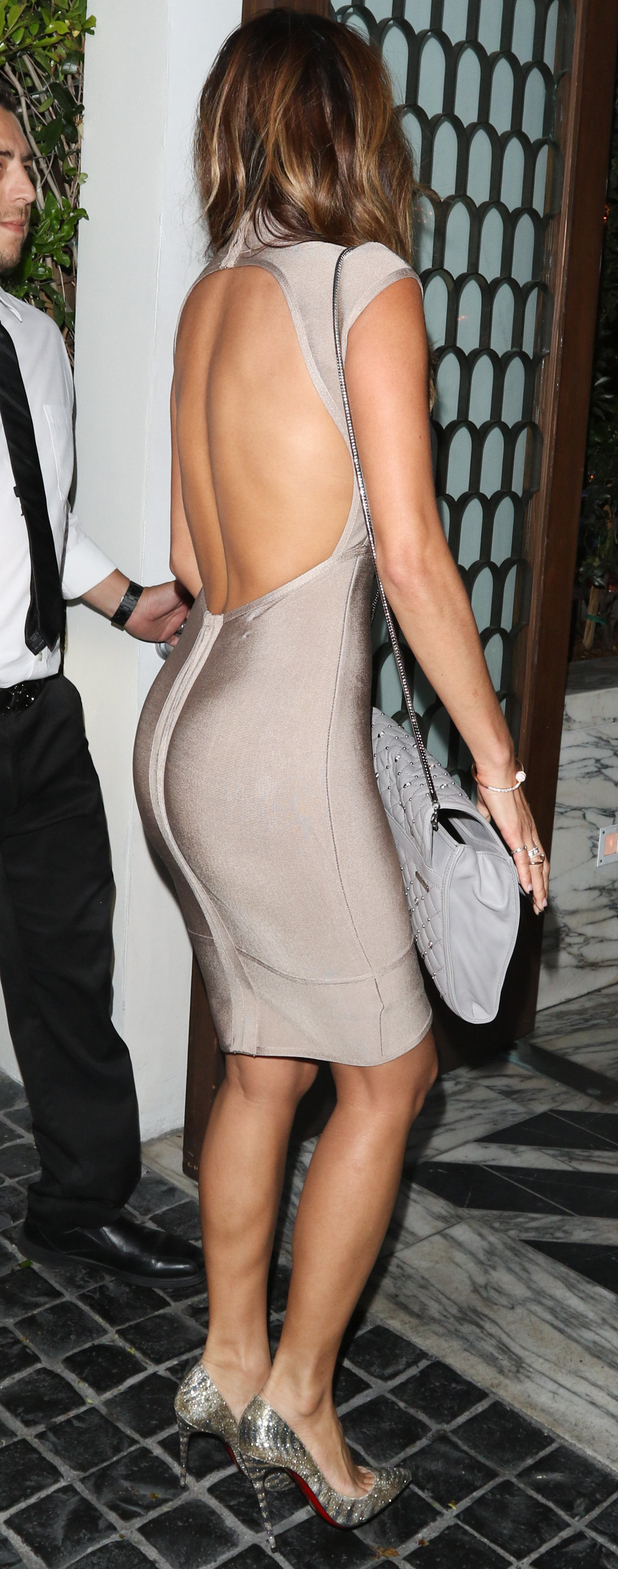 Nicole Scherzinger wears backless gown on night out in L.A 24th June 2015